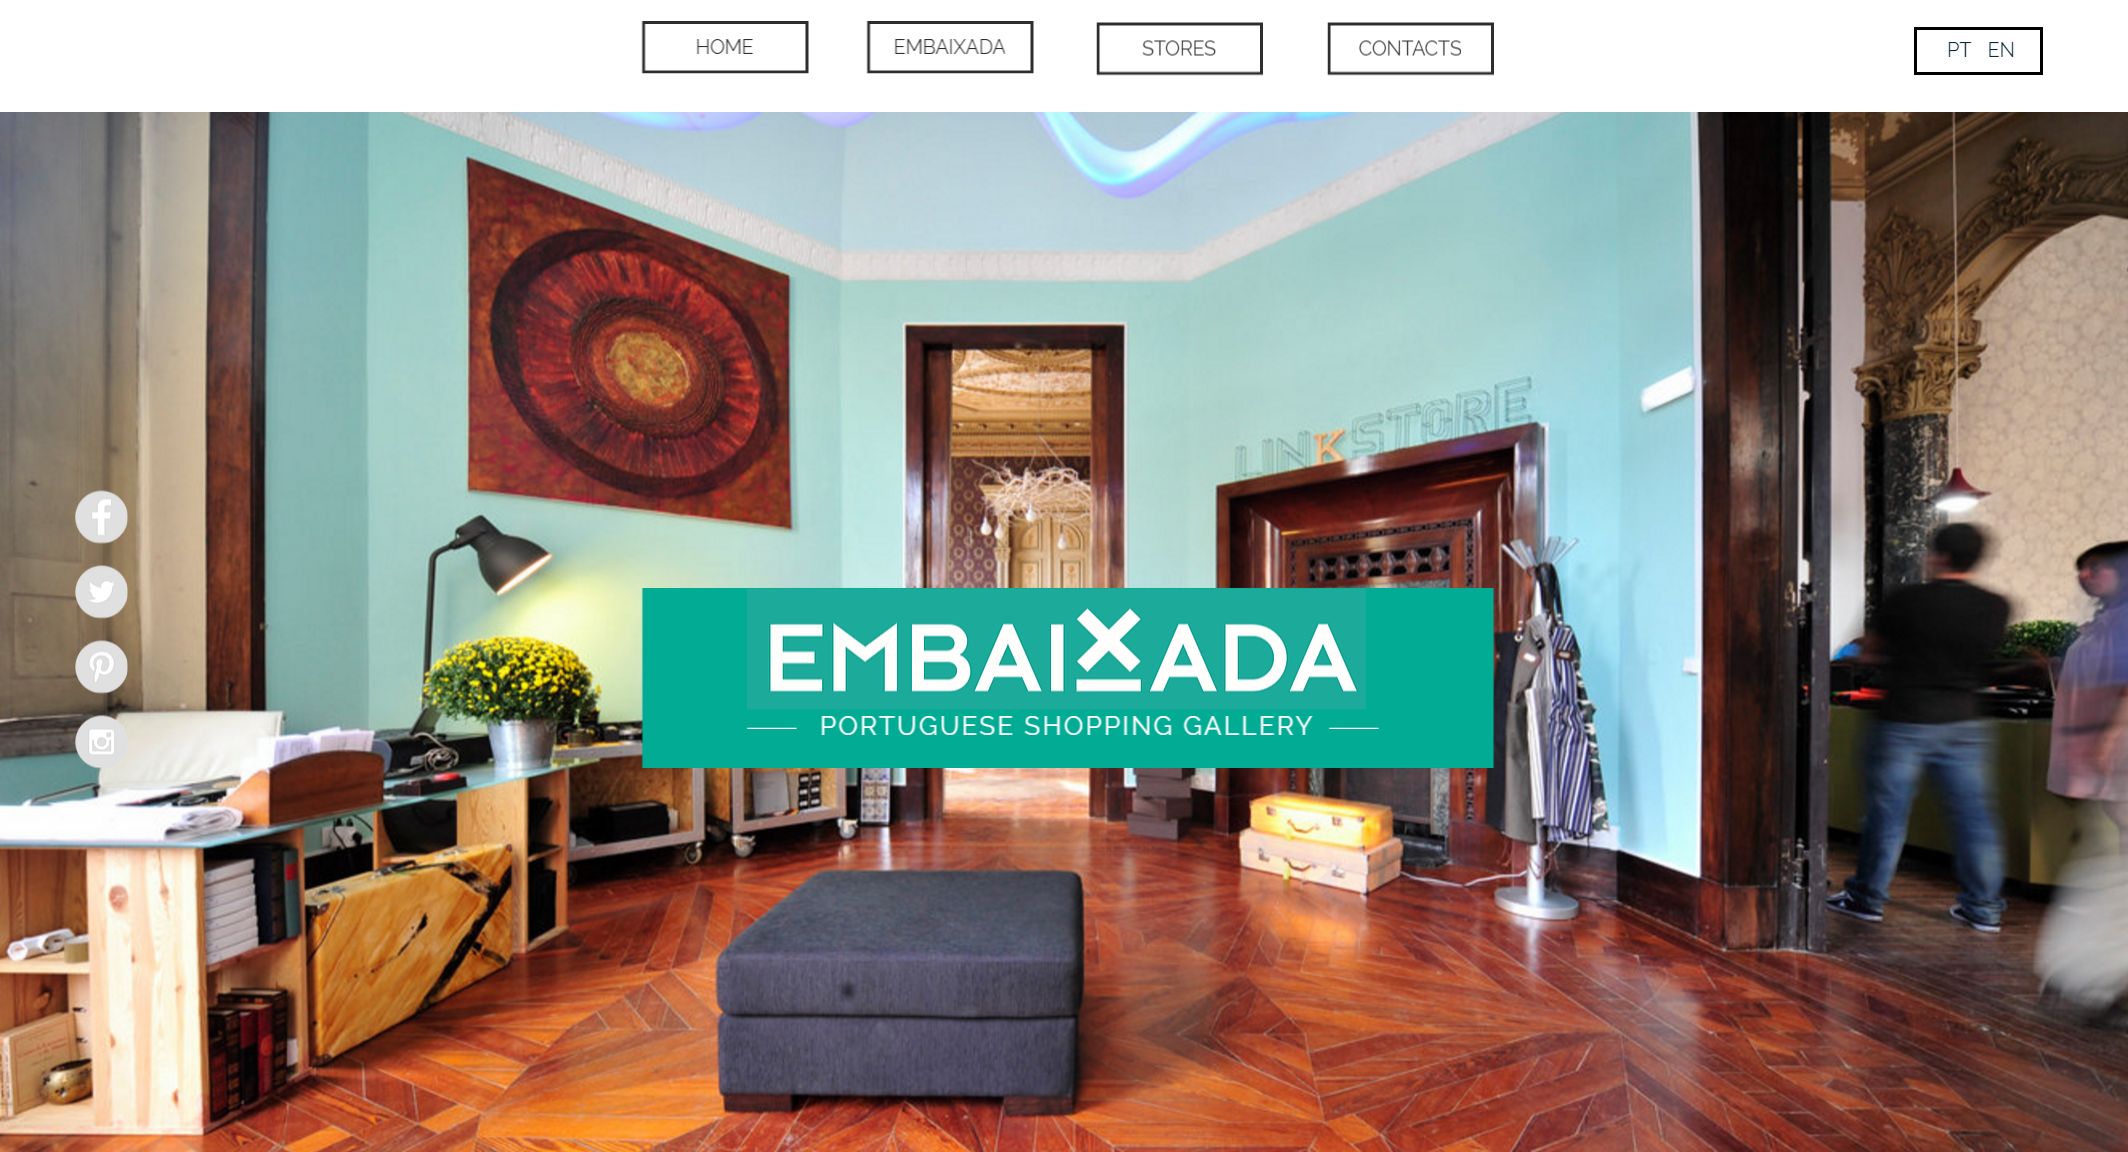 Let's meet Embaixada! #new #website #Embaixada #Portugal #Lisbon #PrincipeReal